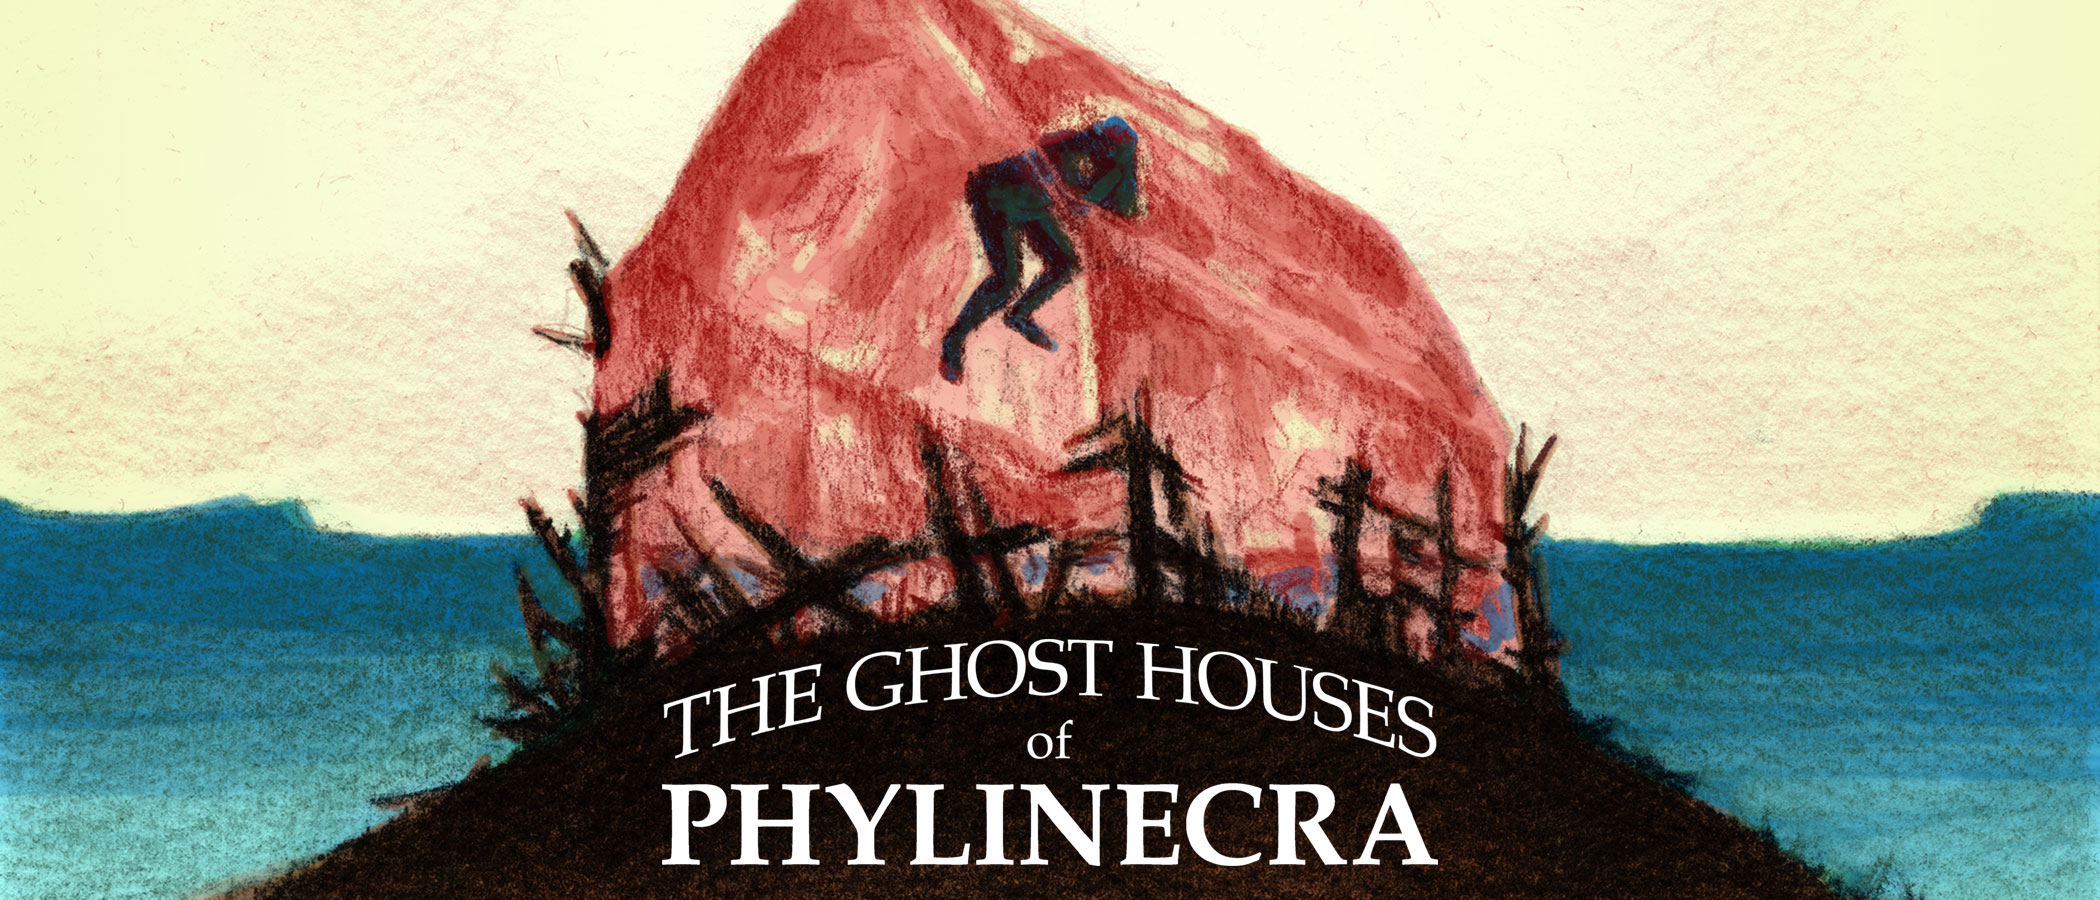 The Ghost Houses of Phylinecra